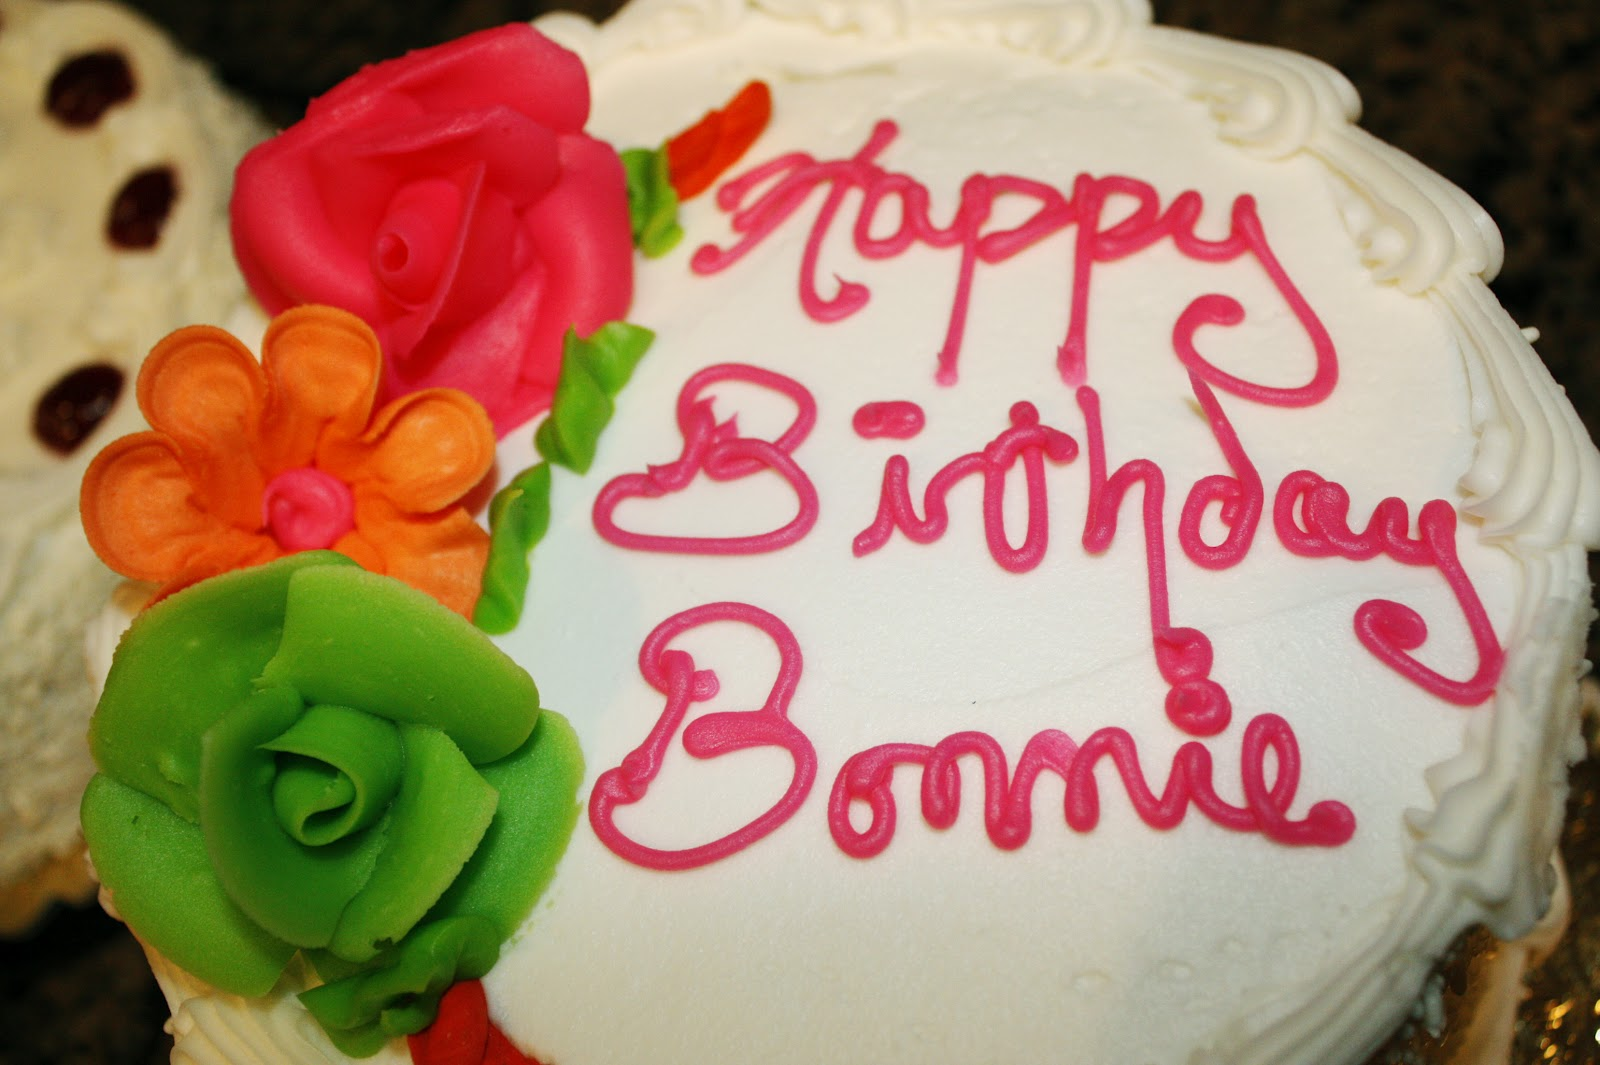 happy birthday bonnie ; _MG_7762